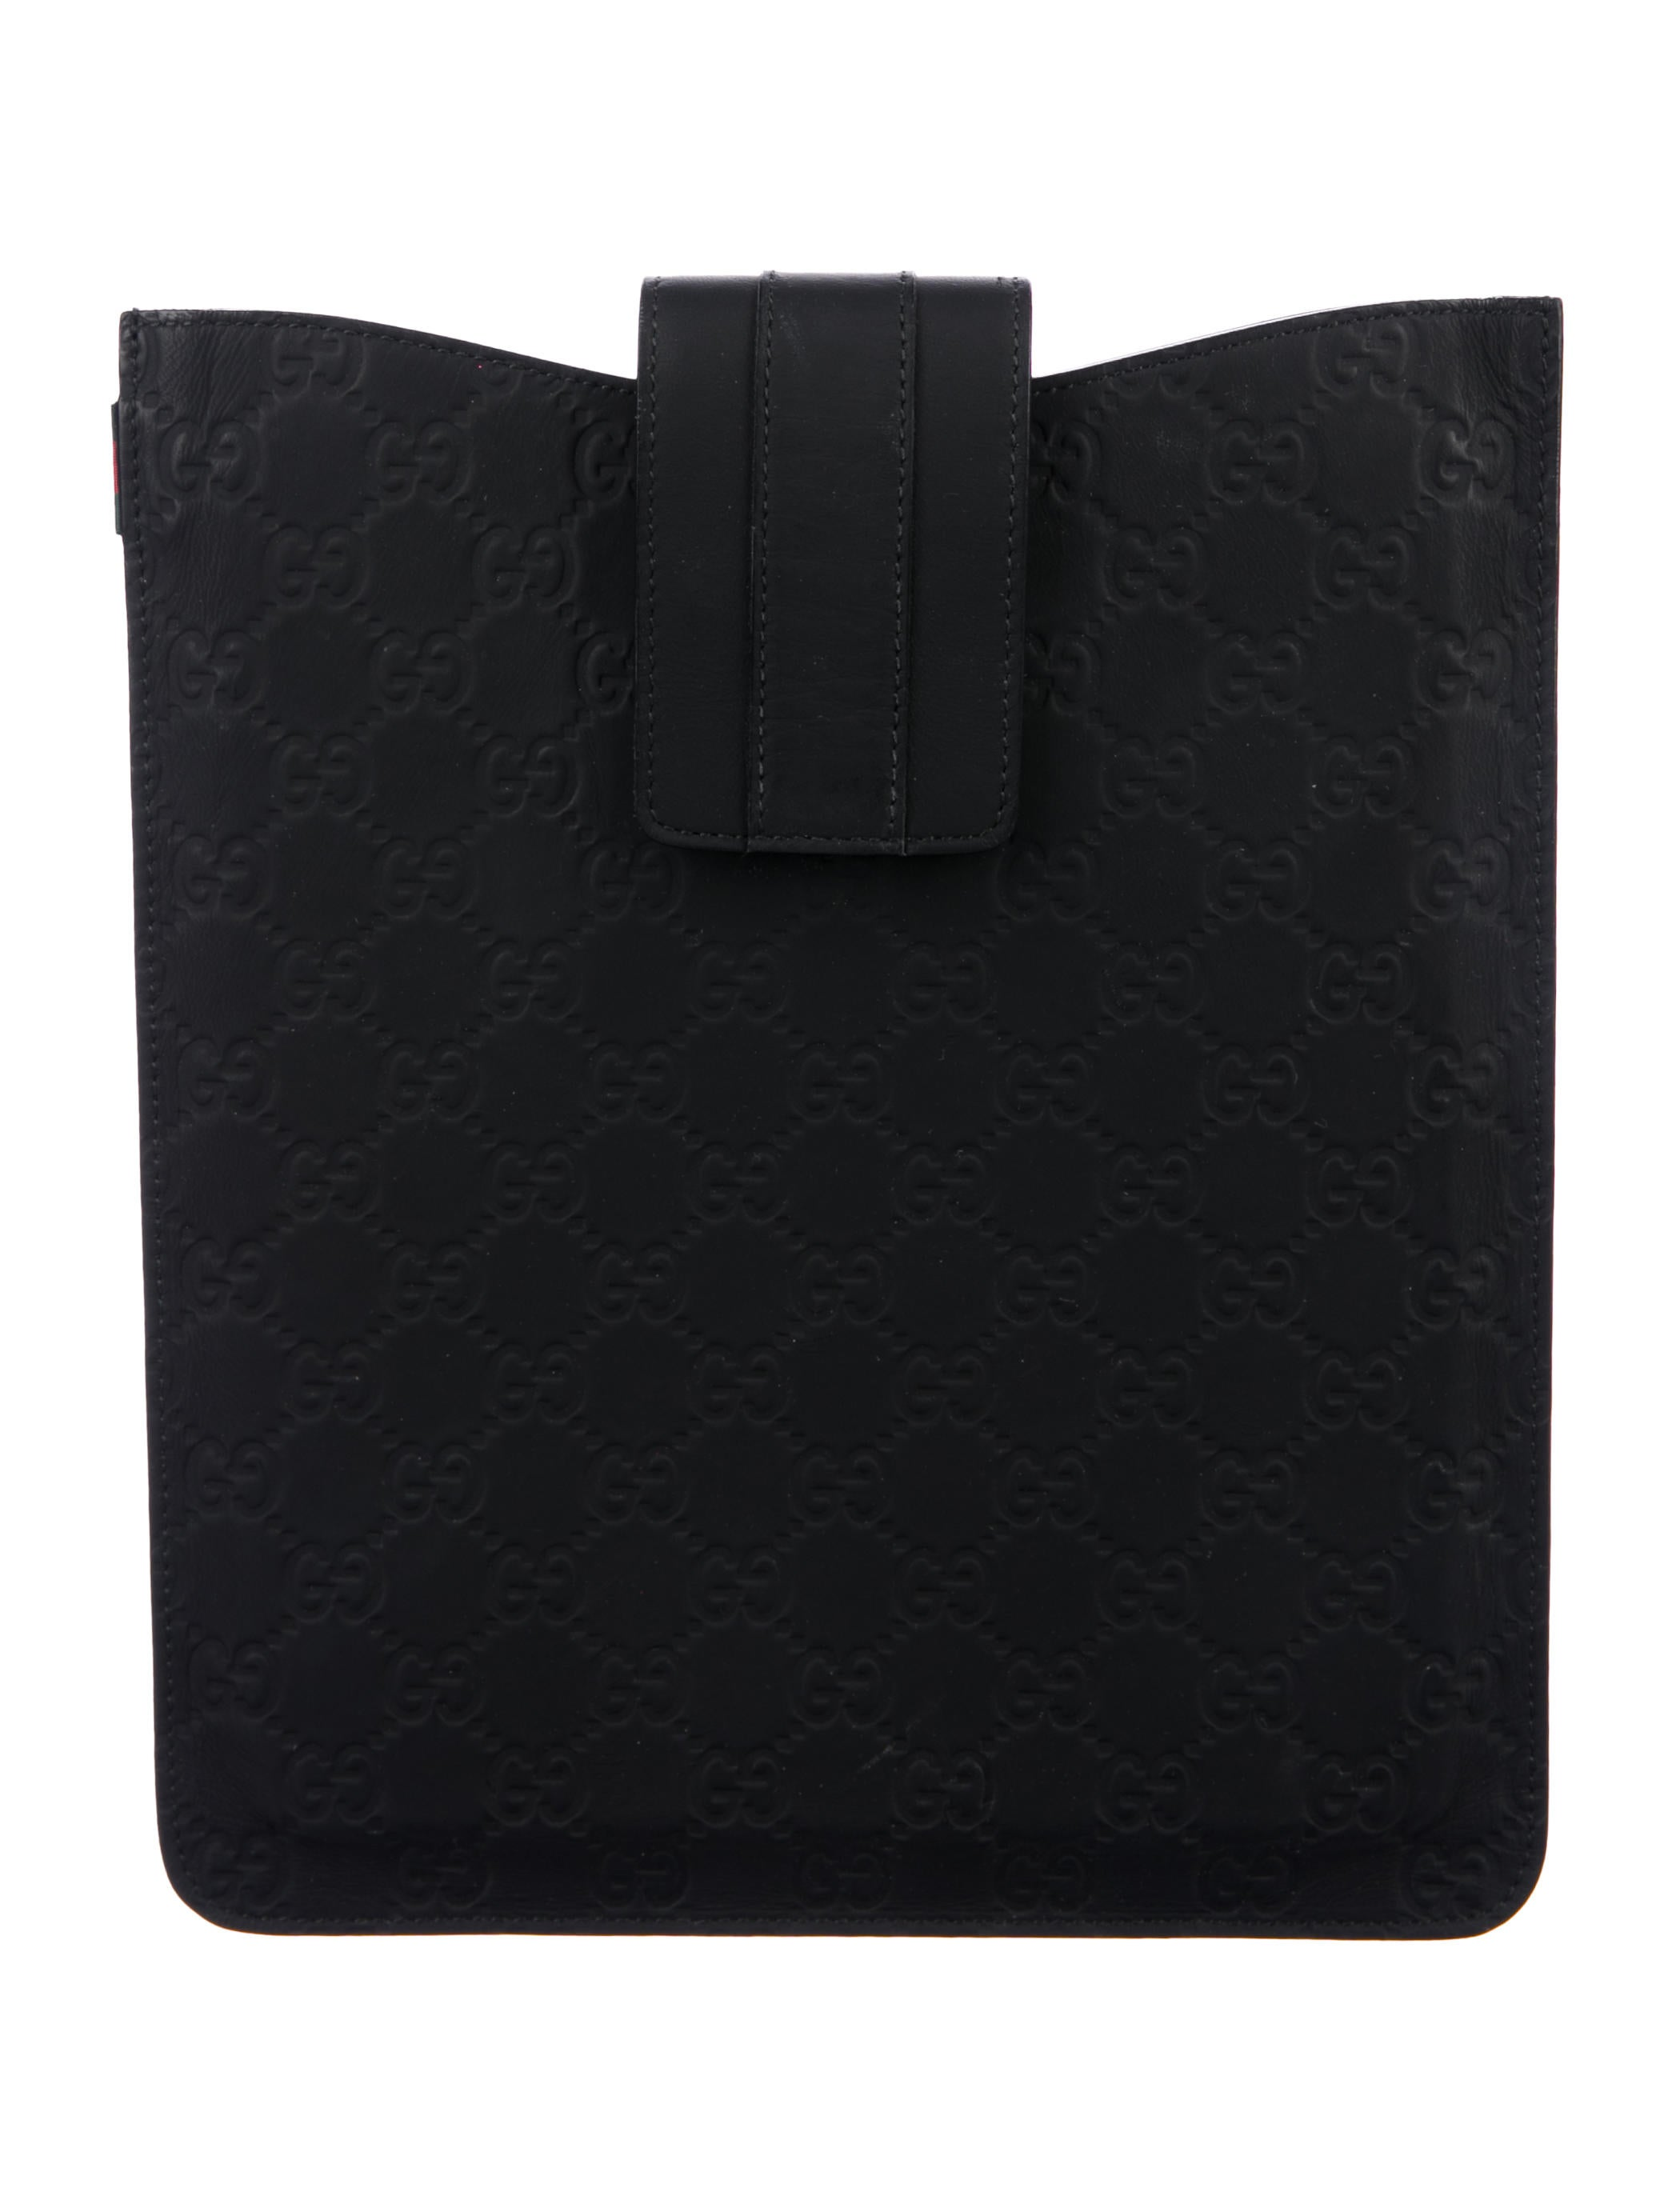 aa7690ca6e2 Gucci Guccissima iPad Sleeve - Technology - GUC217671